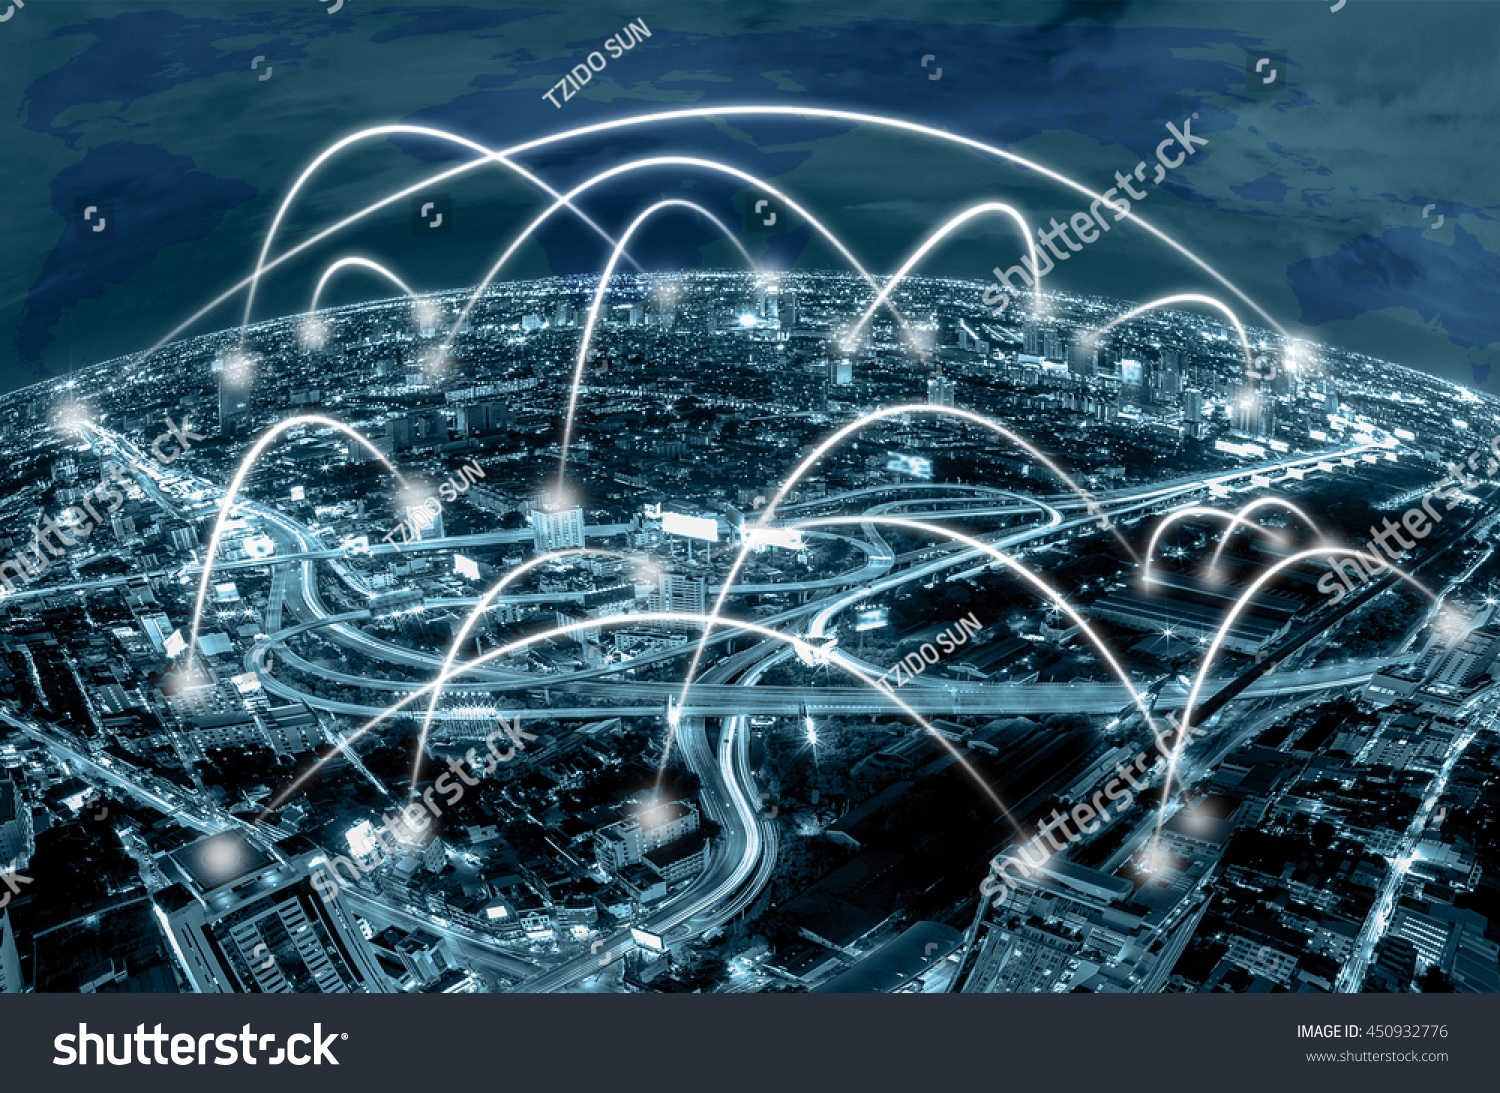 Network connection line between building over stock photo royalty network connection line between building over the top view of cityscape background and world map background gumiabroncs Choice Image